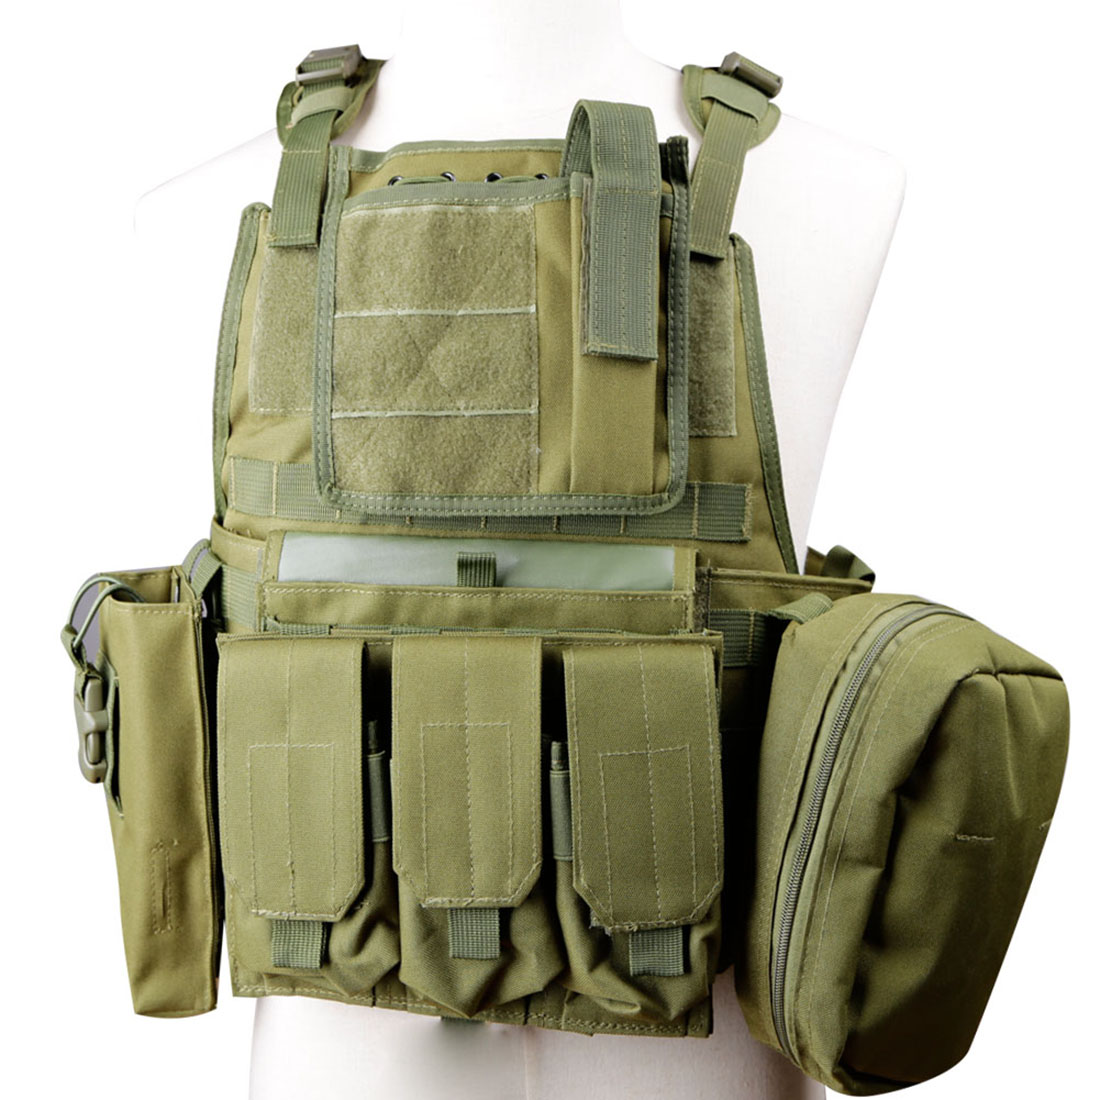 Vest Hunting Shooting Safety Vest Molle Military Quick Release Tactical Vest Adjustable Outdoor Airsoft Paintball Protective